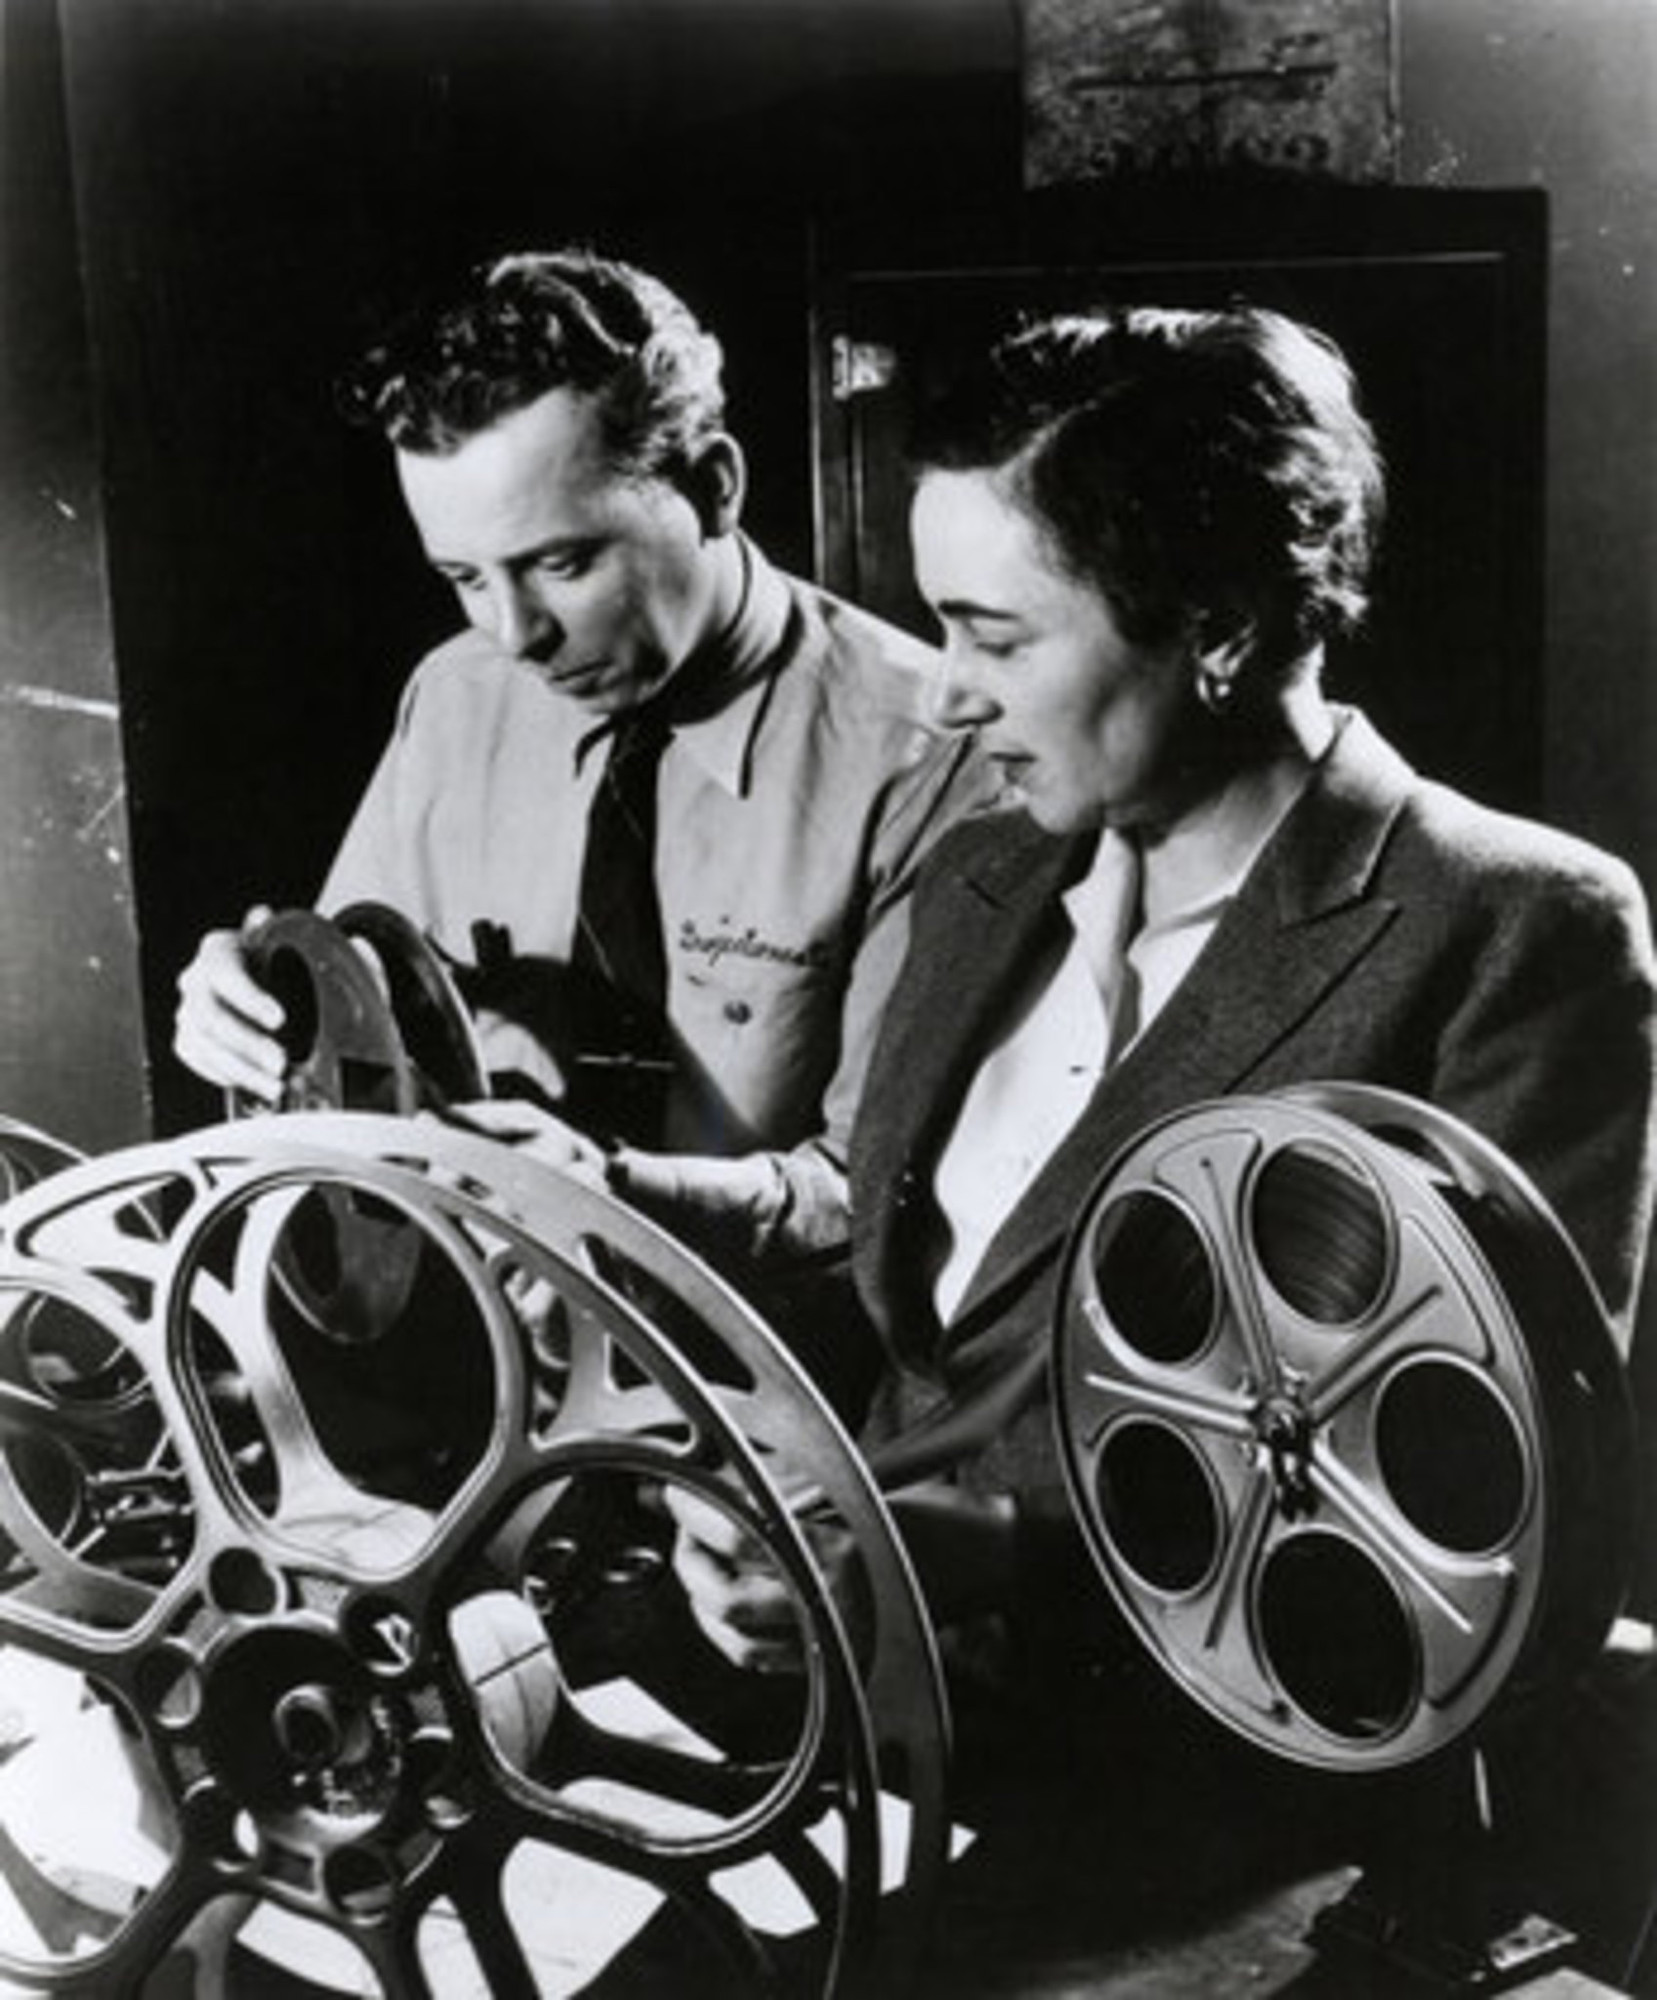 Iris Barry with projectionist Artie Steiger